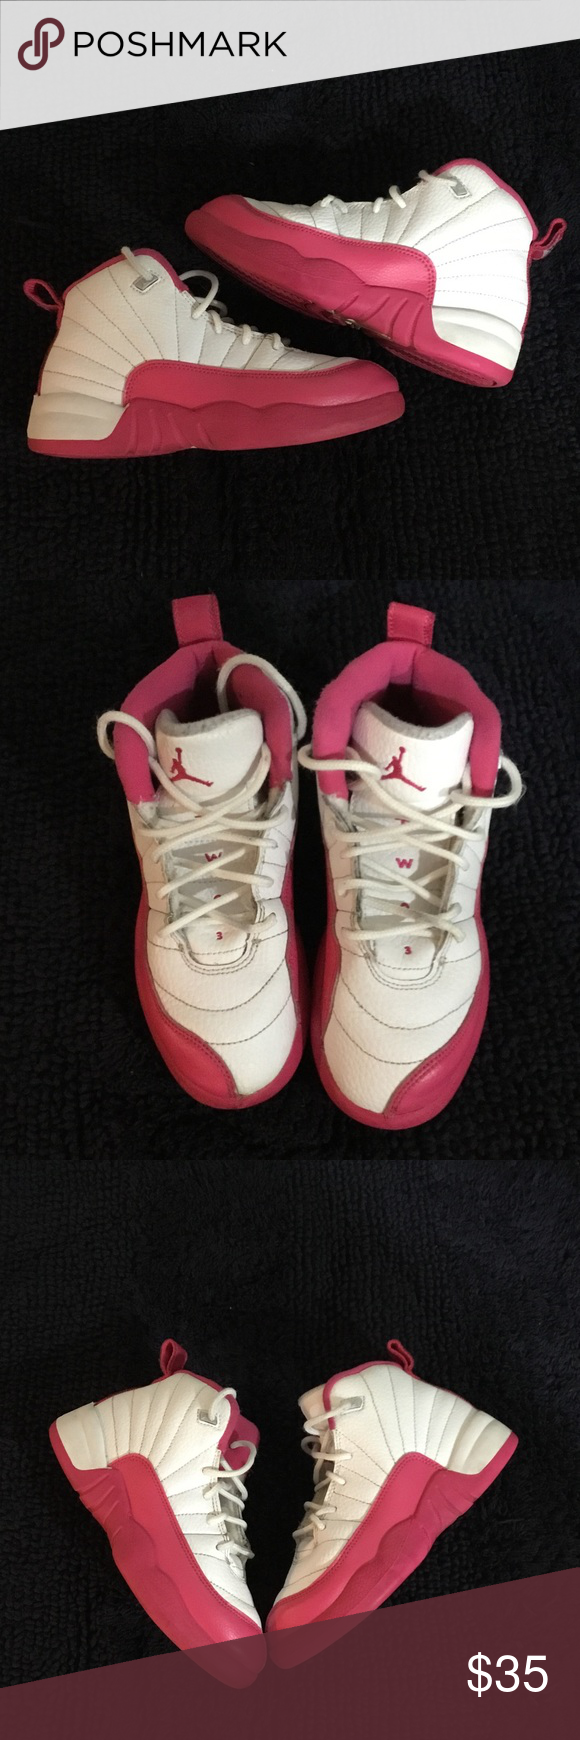 Jordan retro Pink & white size 13 only signs of wear is on the inside tongue of sneaker Shoes Sneakers